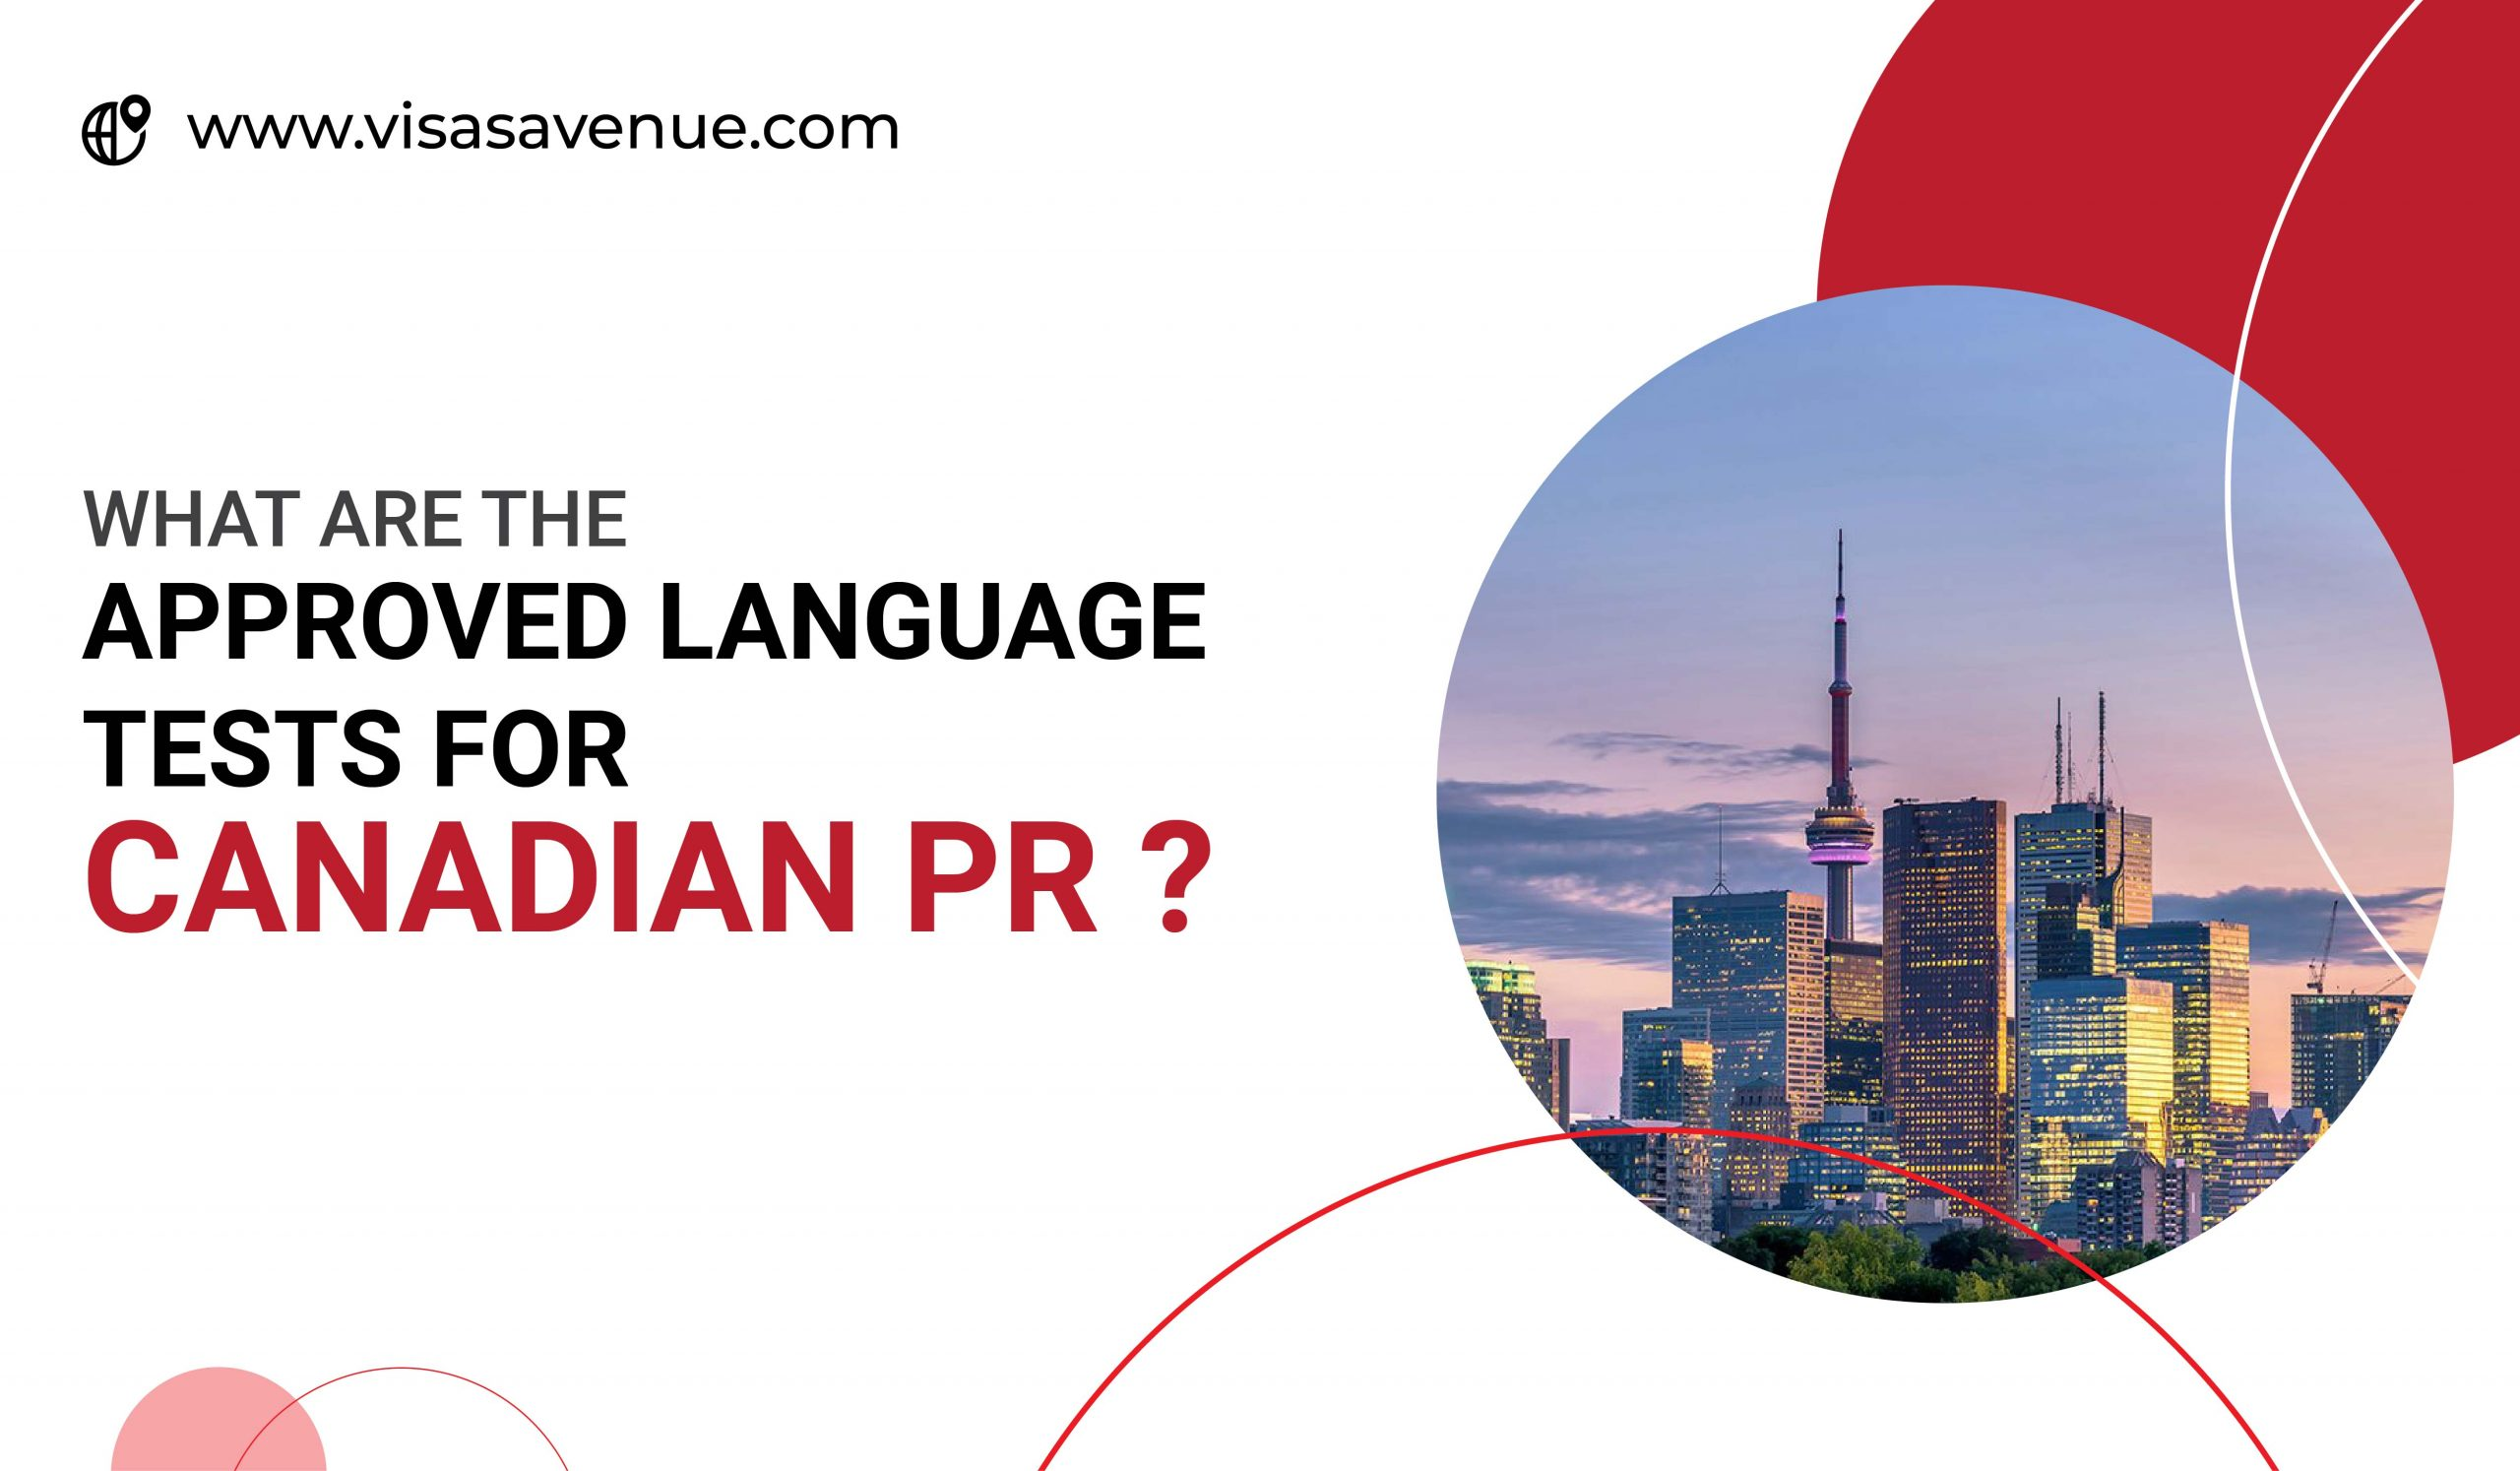 What are the Approved Language Tests for Canadian PR